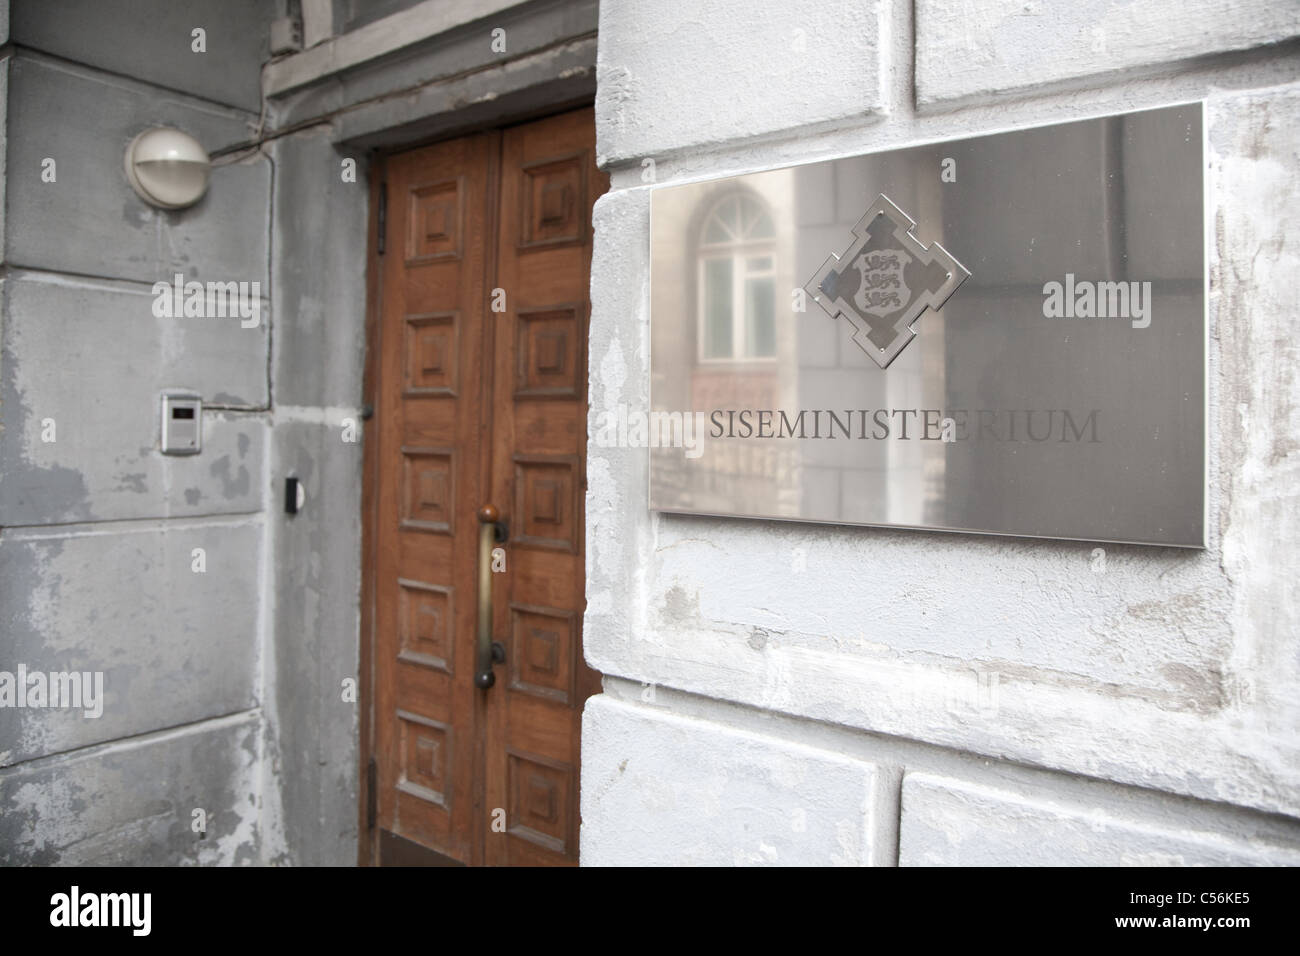 Entrance to the Interior Ministry in Tallinn Estonia which former housed the KGB headquarter. Stock Photo